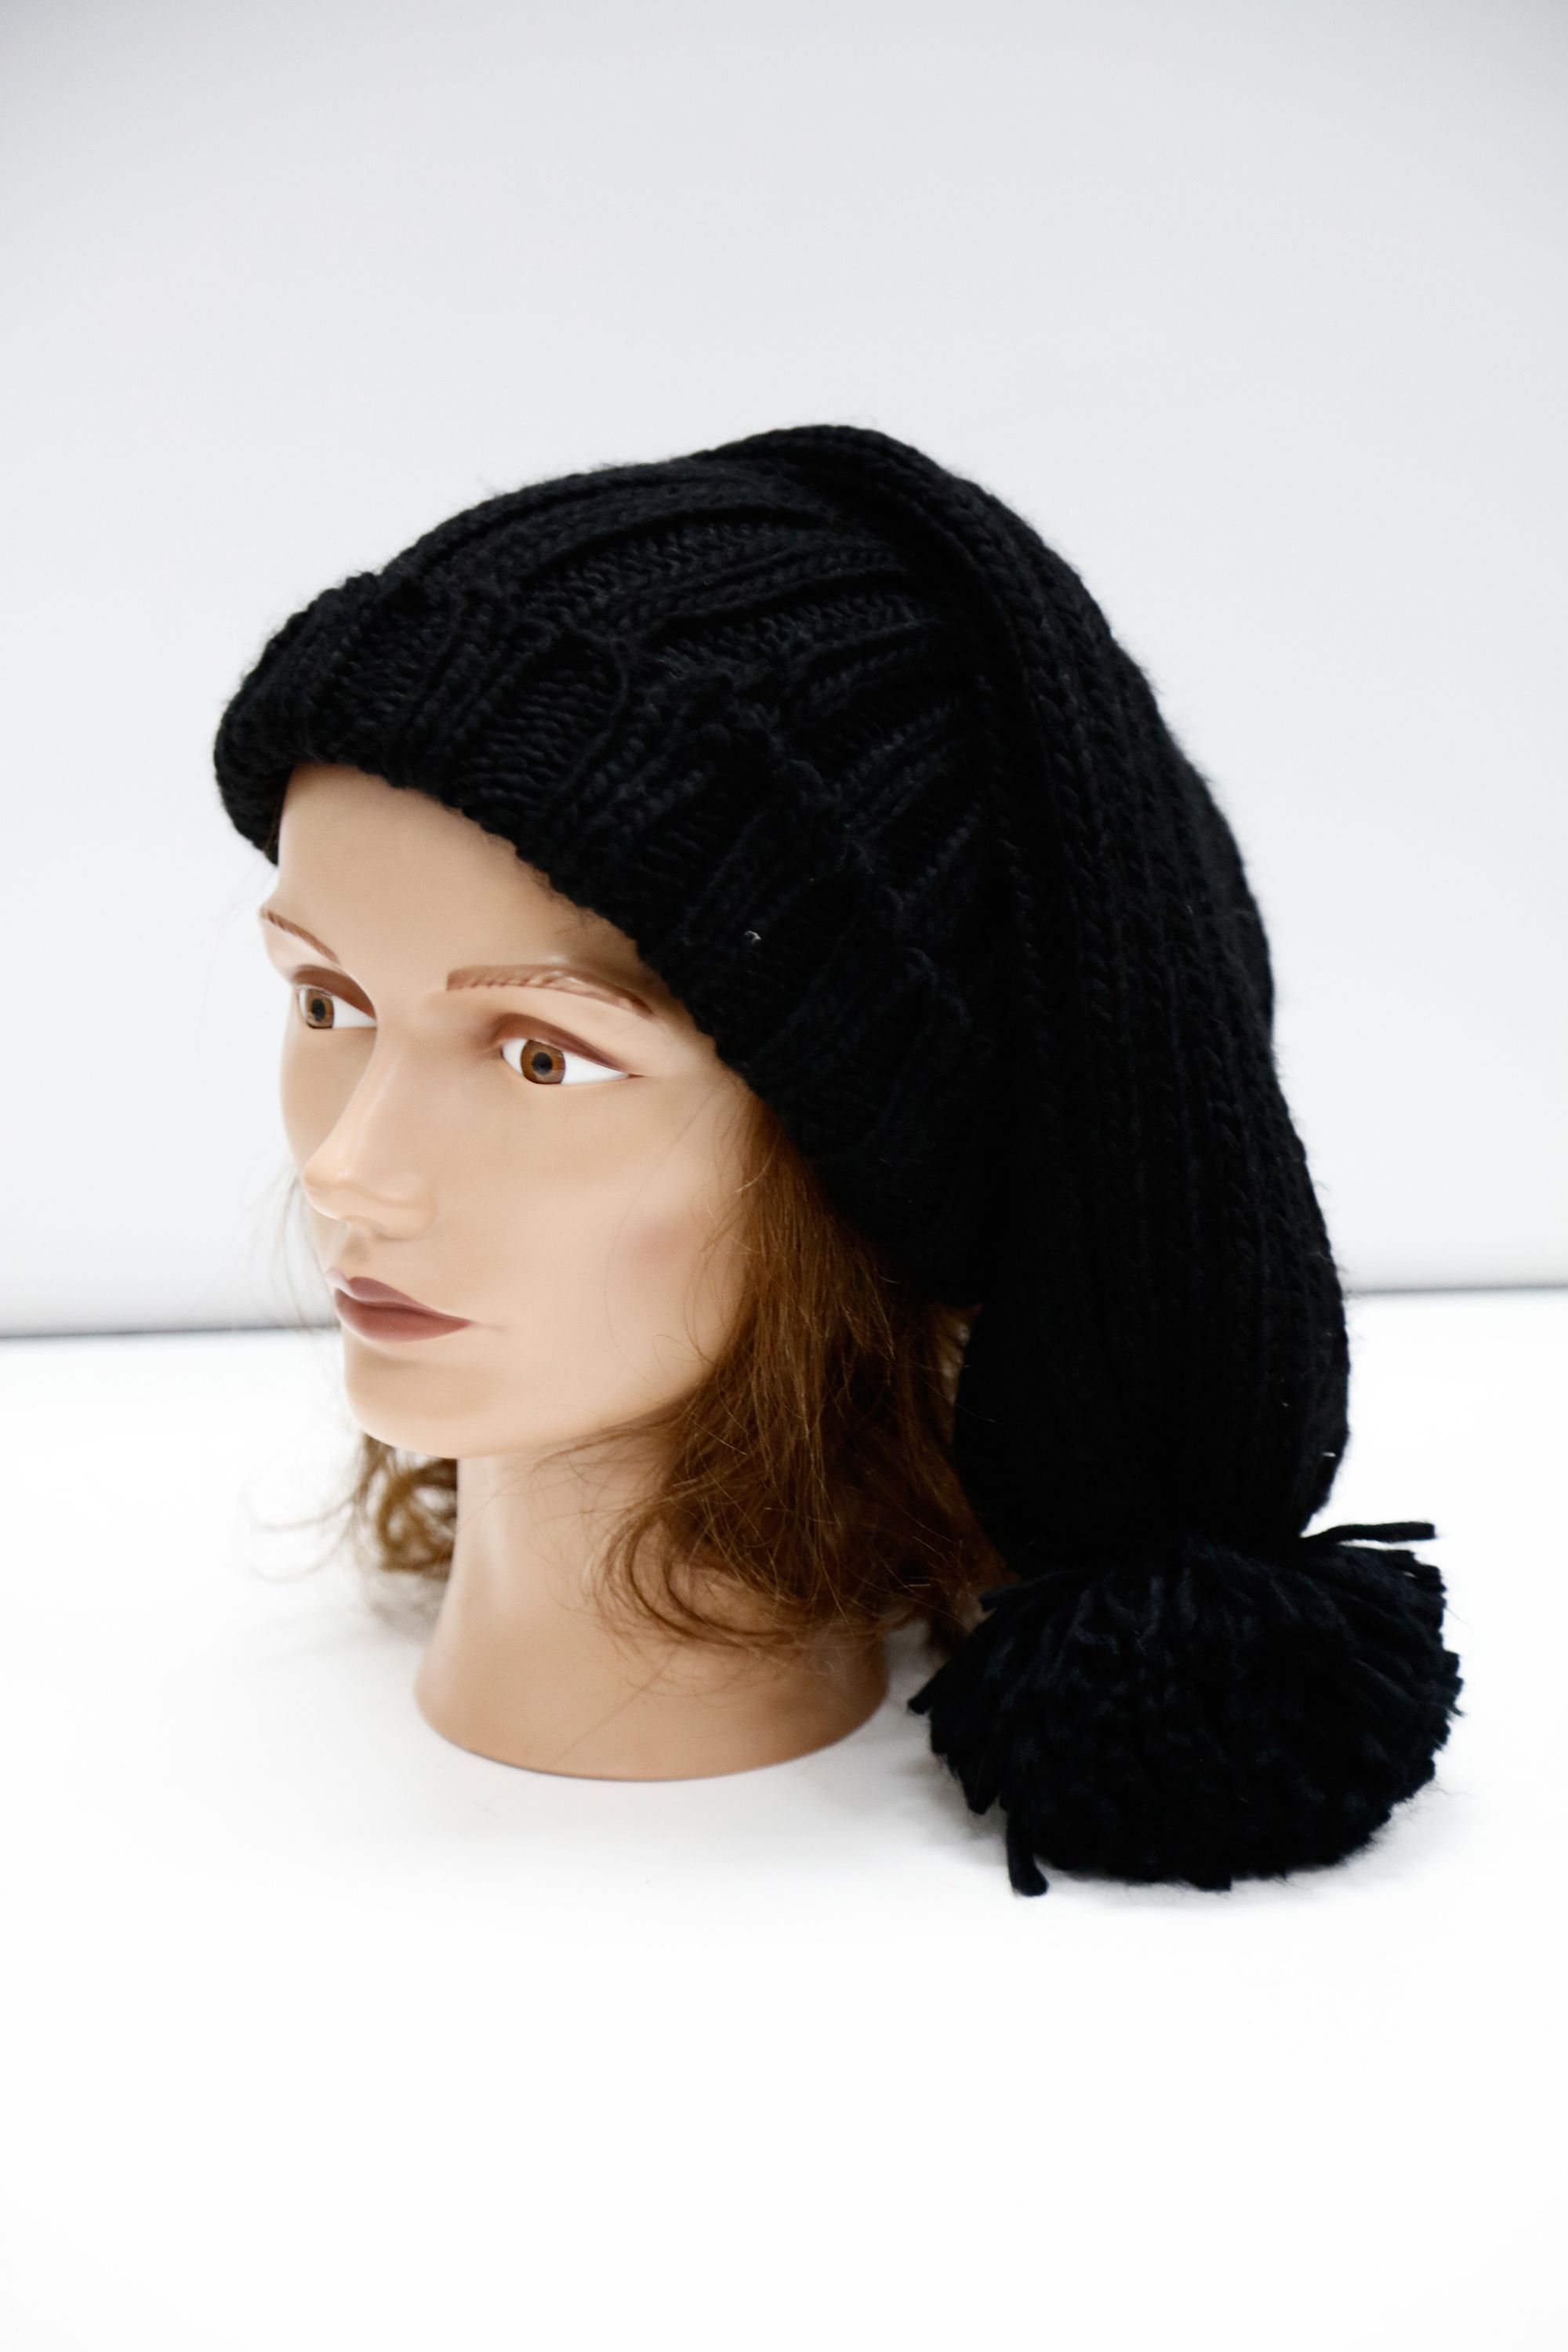 Large Black Slouchie Beanie with Puff  A6251578  A6251735 ... 09dcfaf3602